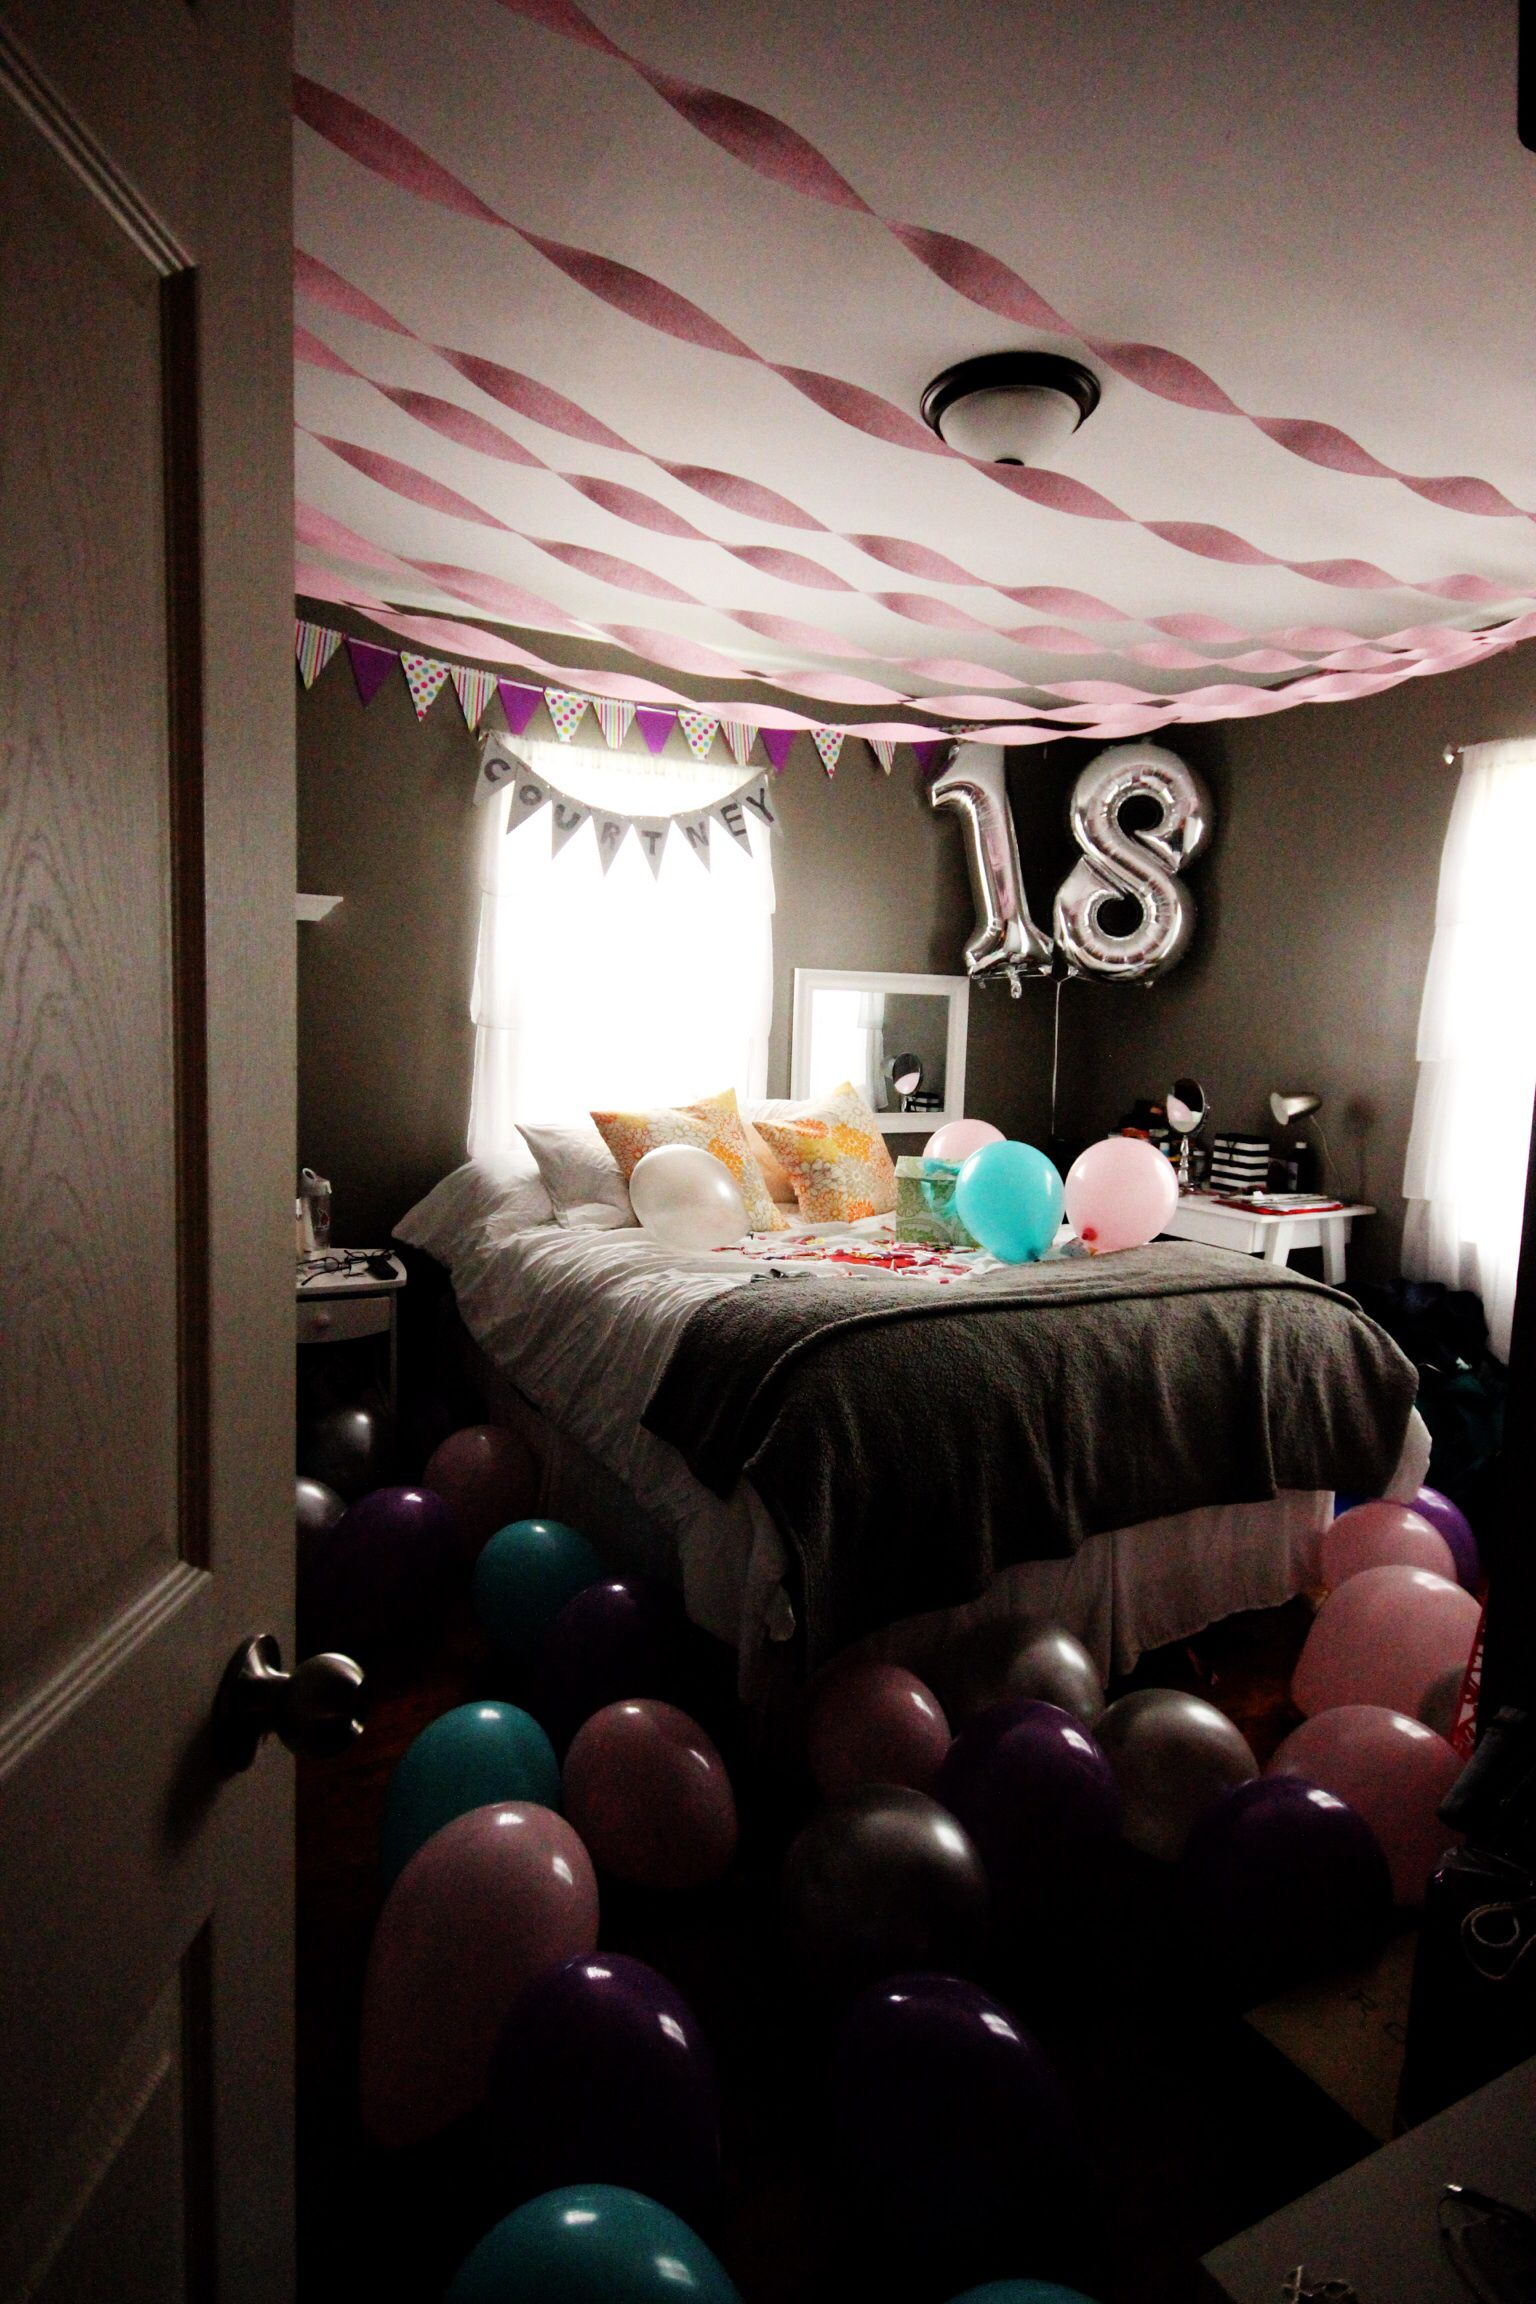 Bedroom surprise for birthday it 39 s me kiersten marie for 17th birthday decoration ideas